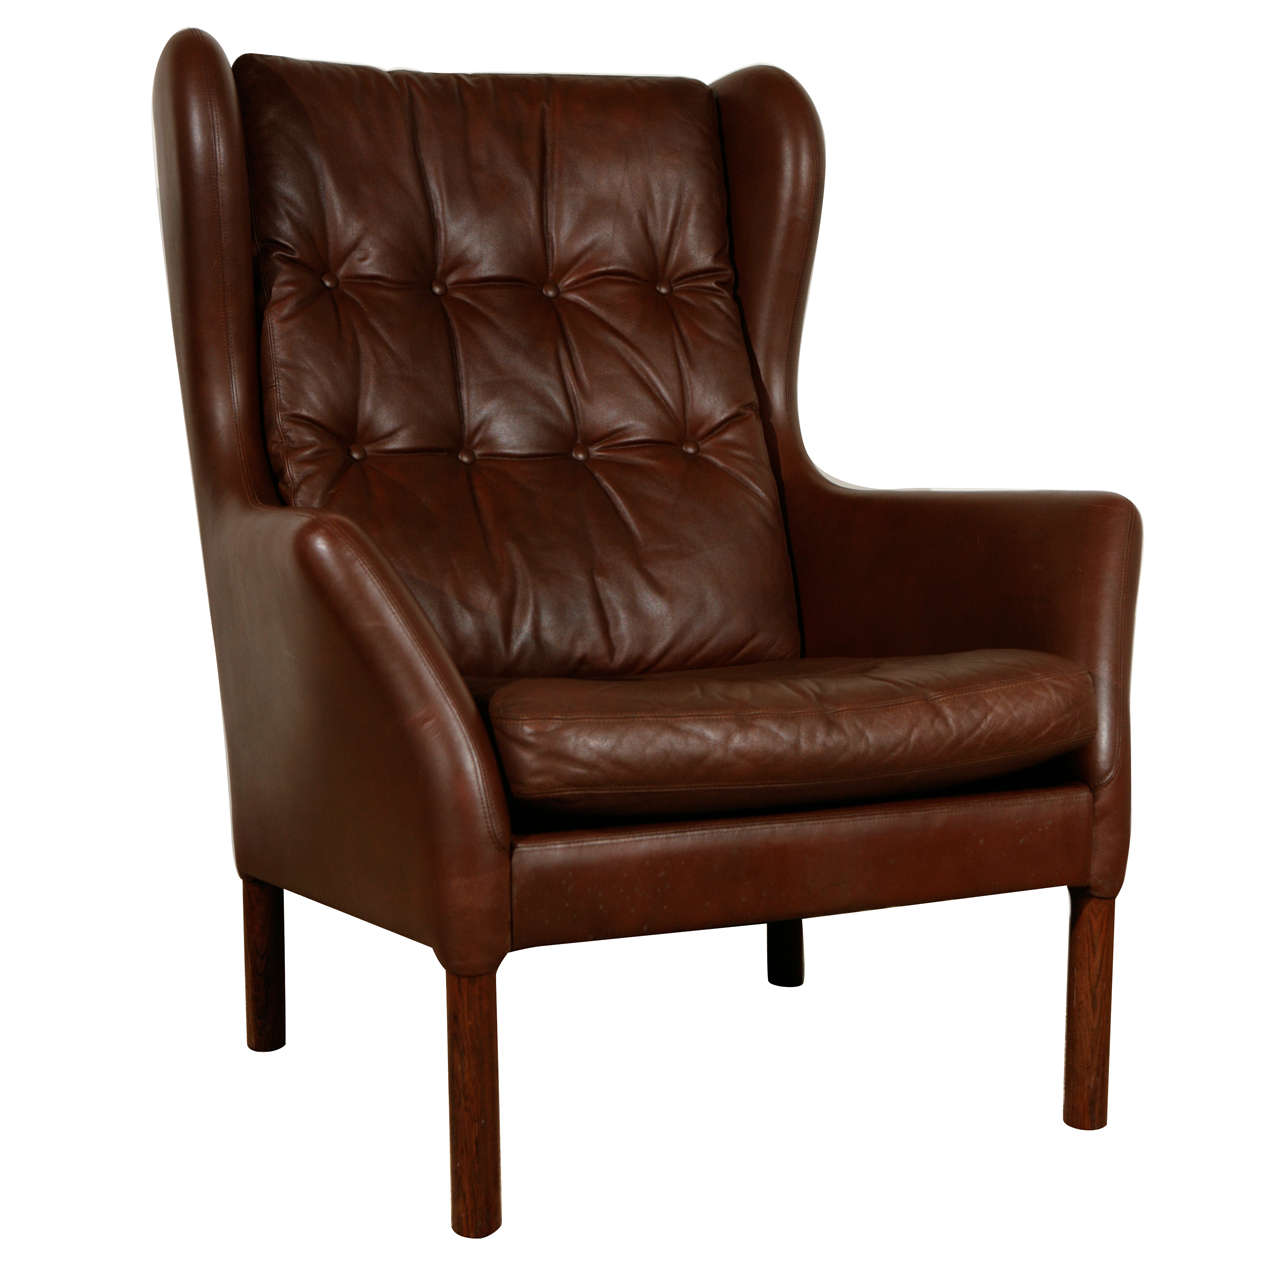 Vintage Leather Wingback Chair at 1stdibs